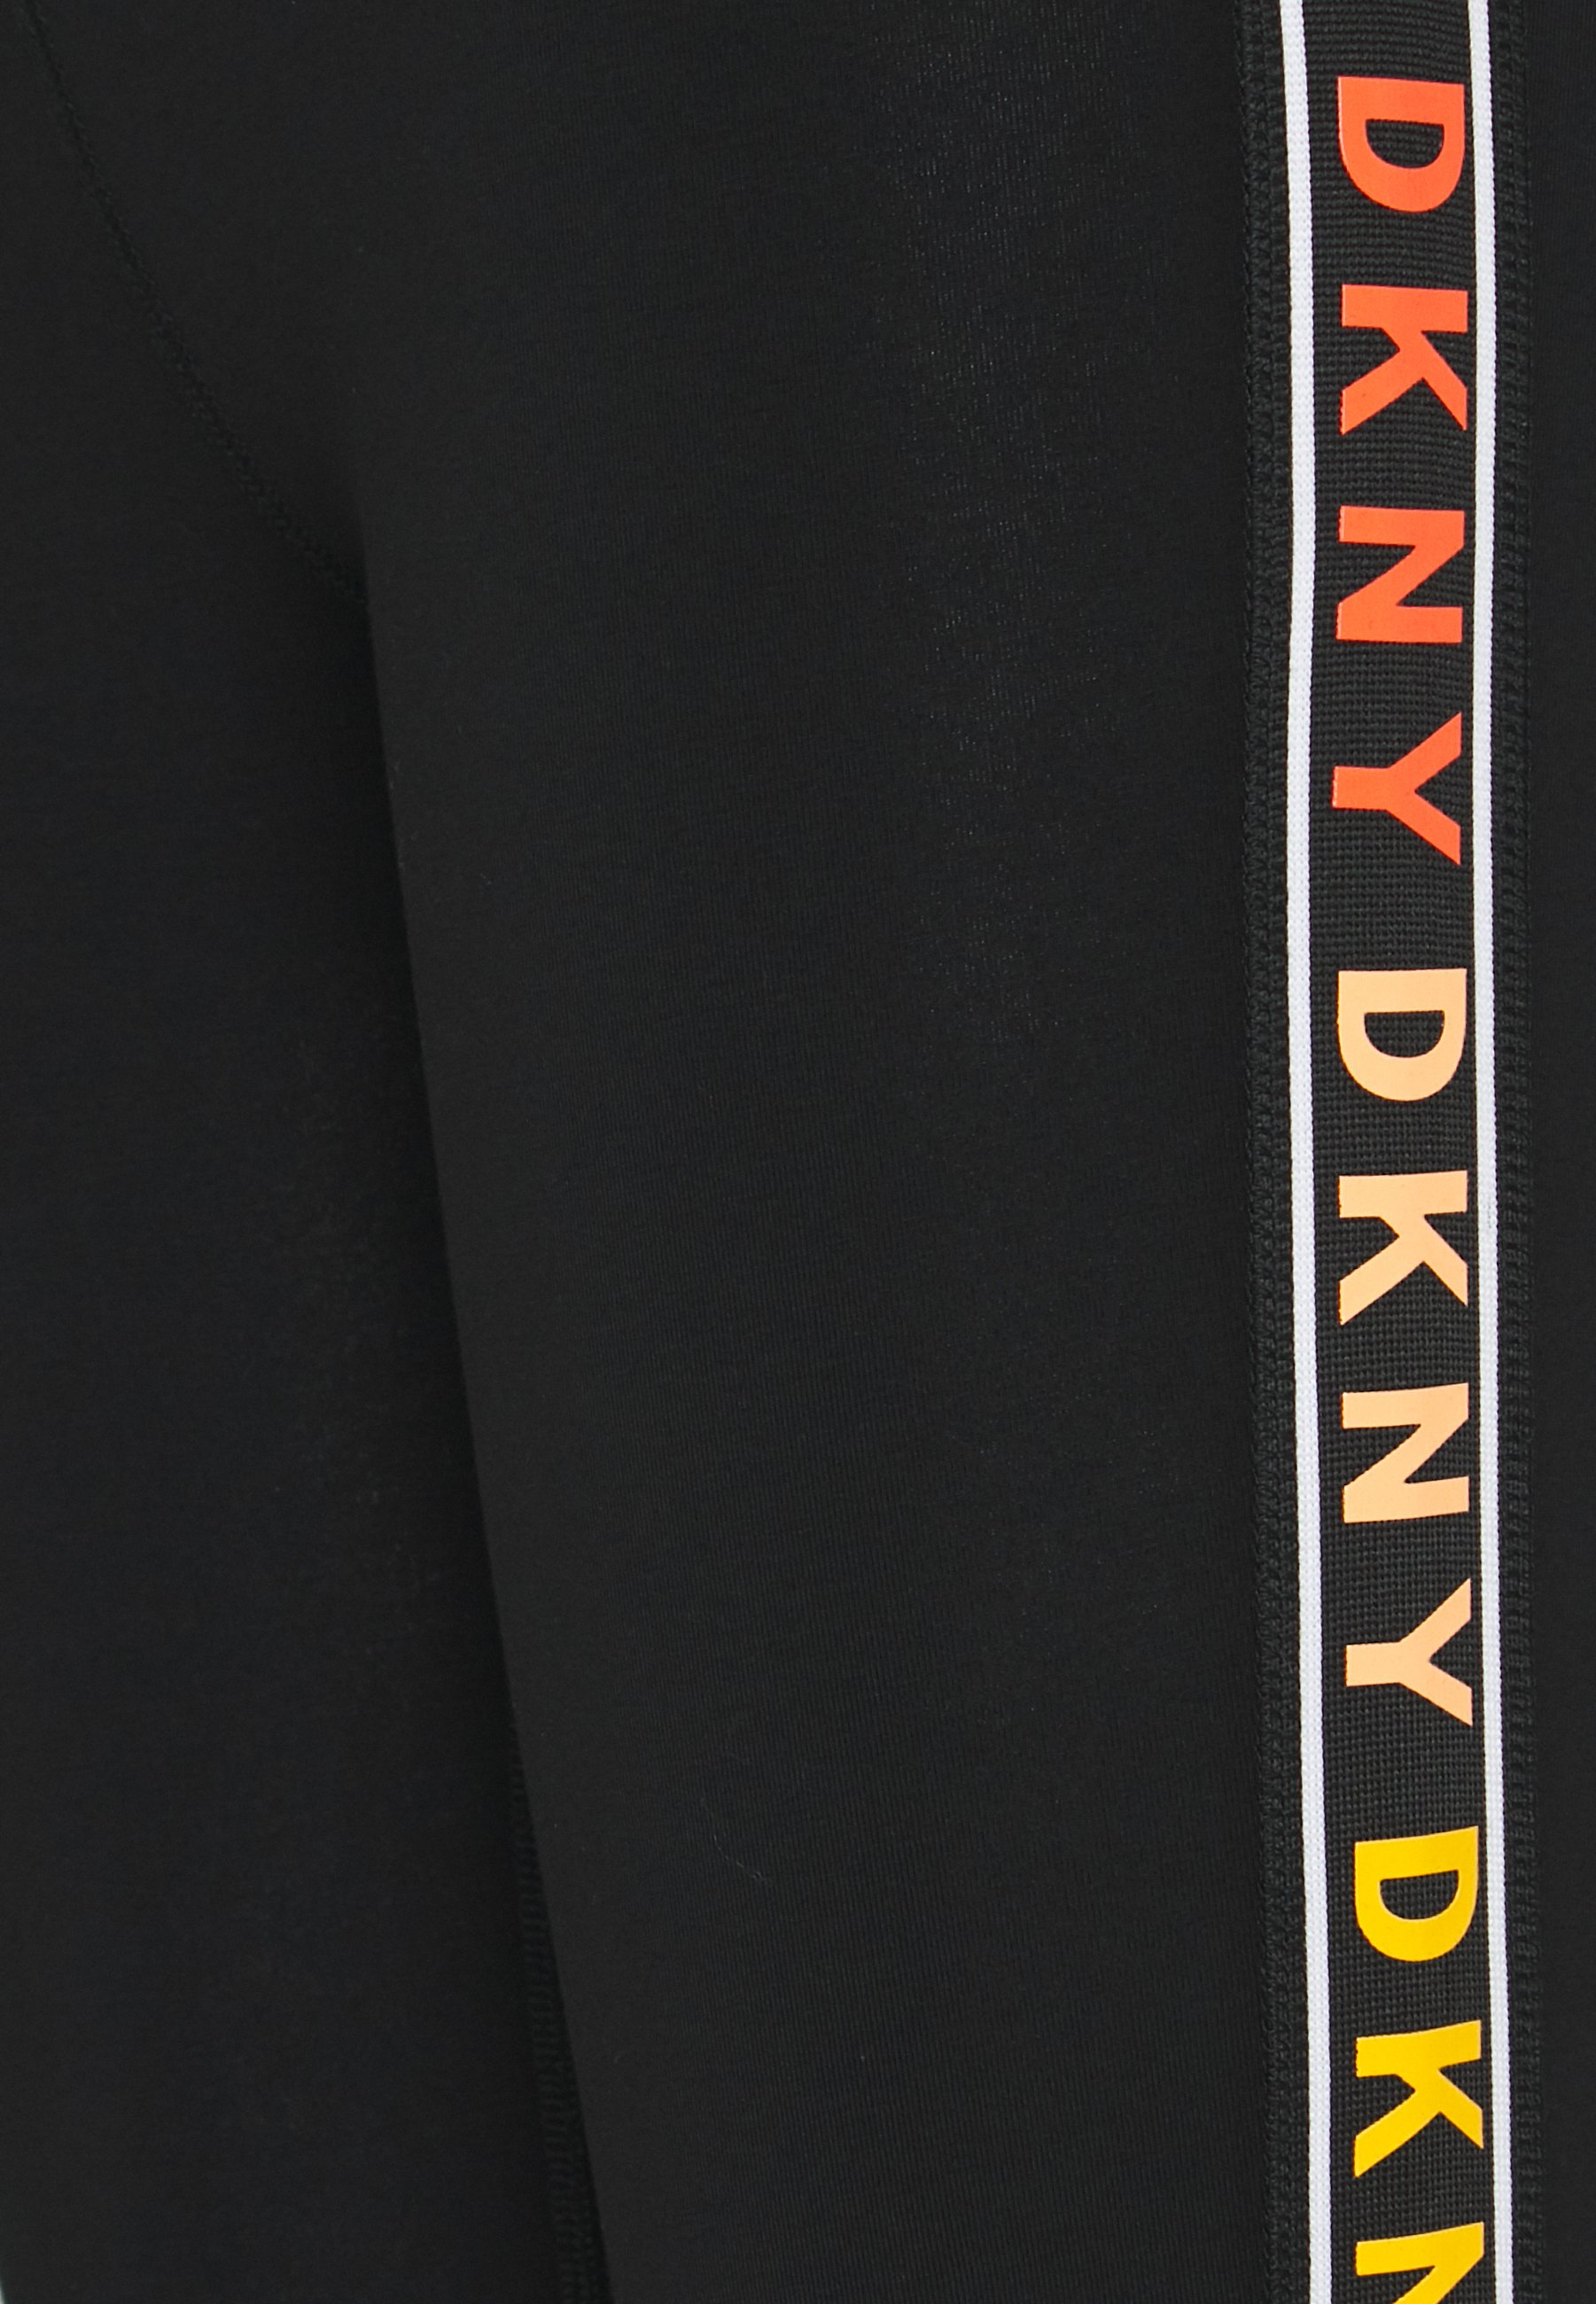 Dkny High Waist 7/8 Legging Logo Webbed Tape - Tights Vermillion Black Friday